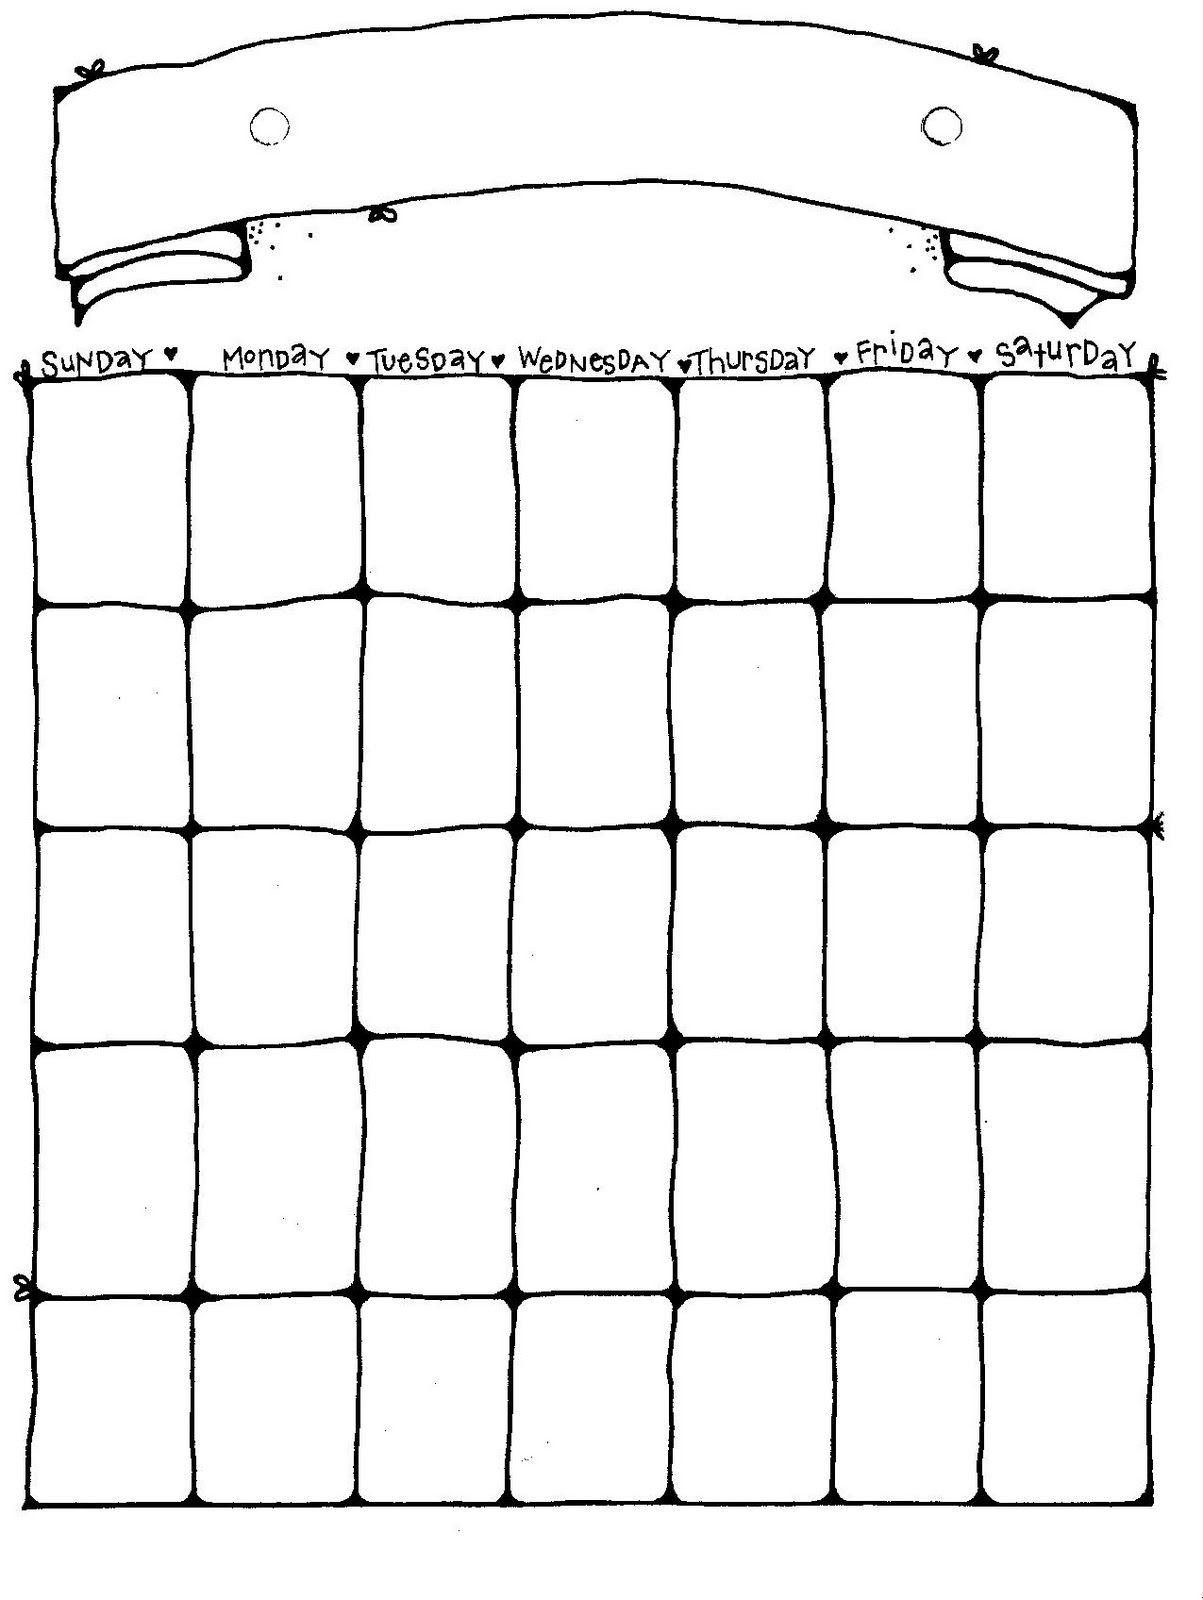 Connie\'s File Cabinet: MONTHLY BLANK CALENDAR PAGES FOR A YEAR ...